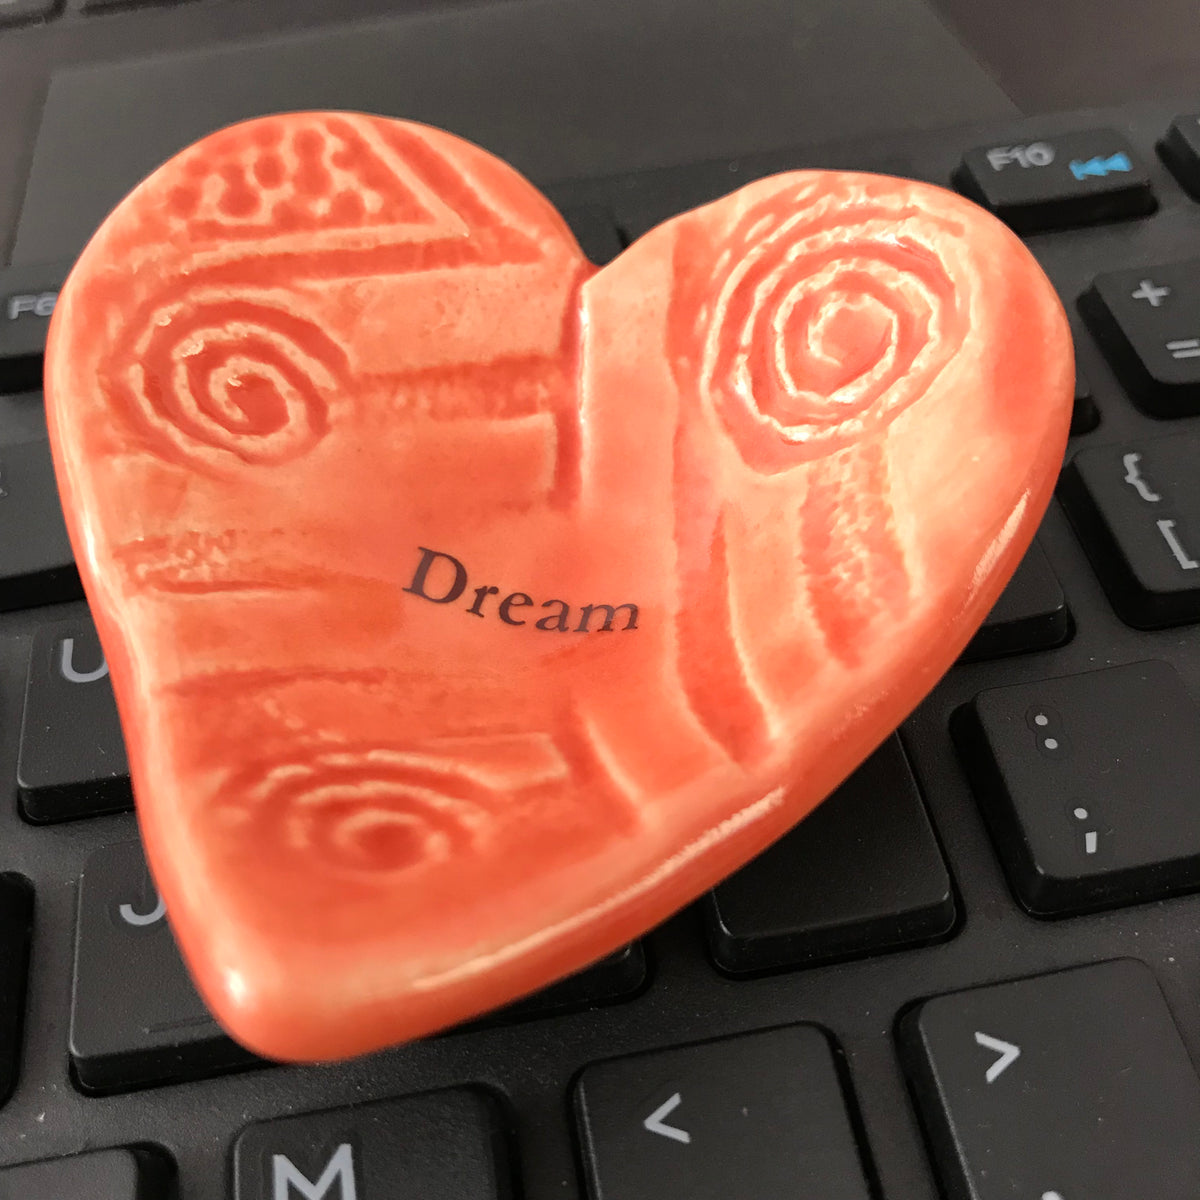 """Dream"" Giving Heart is a great gift because it shows your support, respect and intention for others."